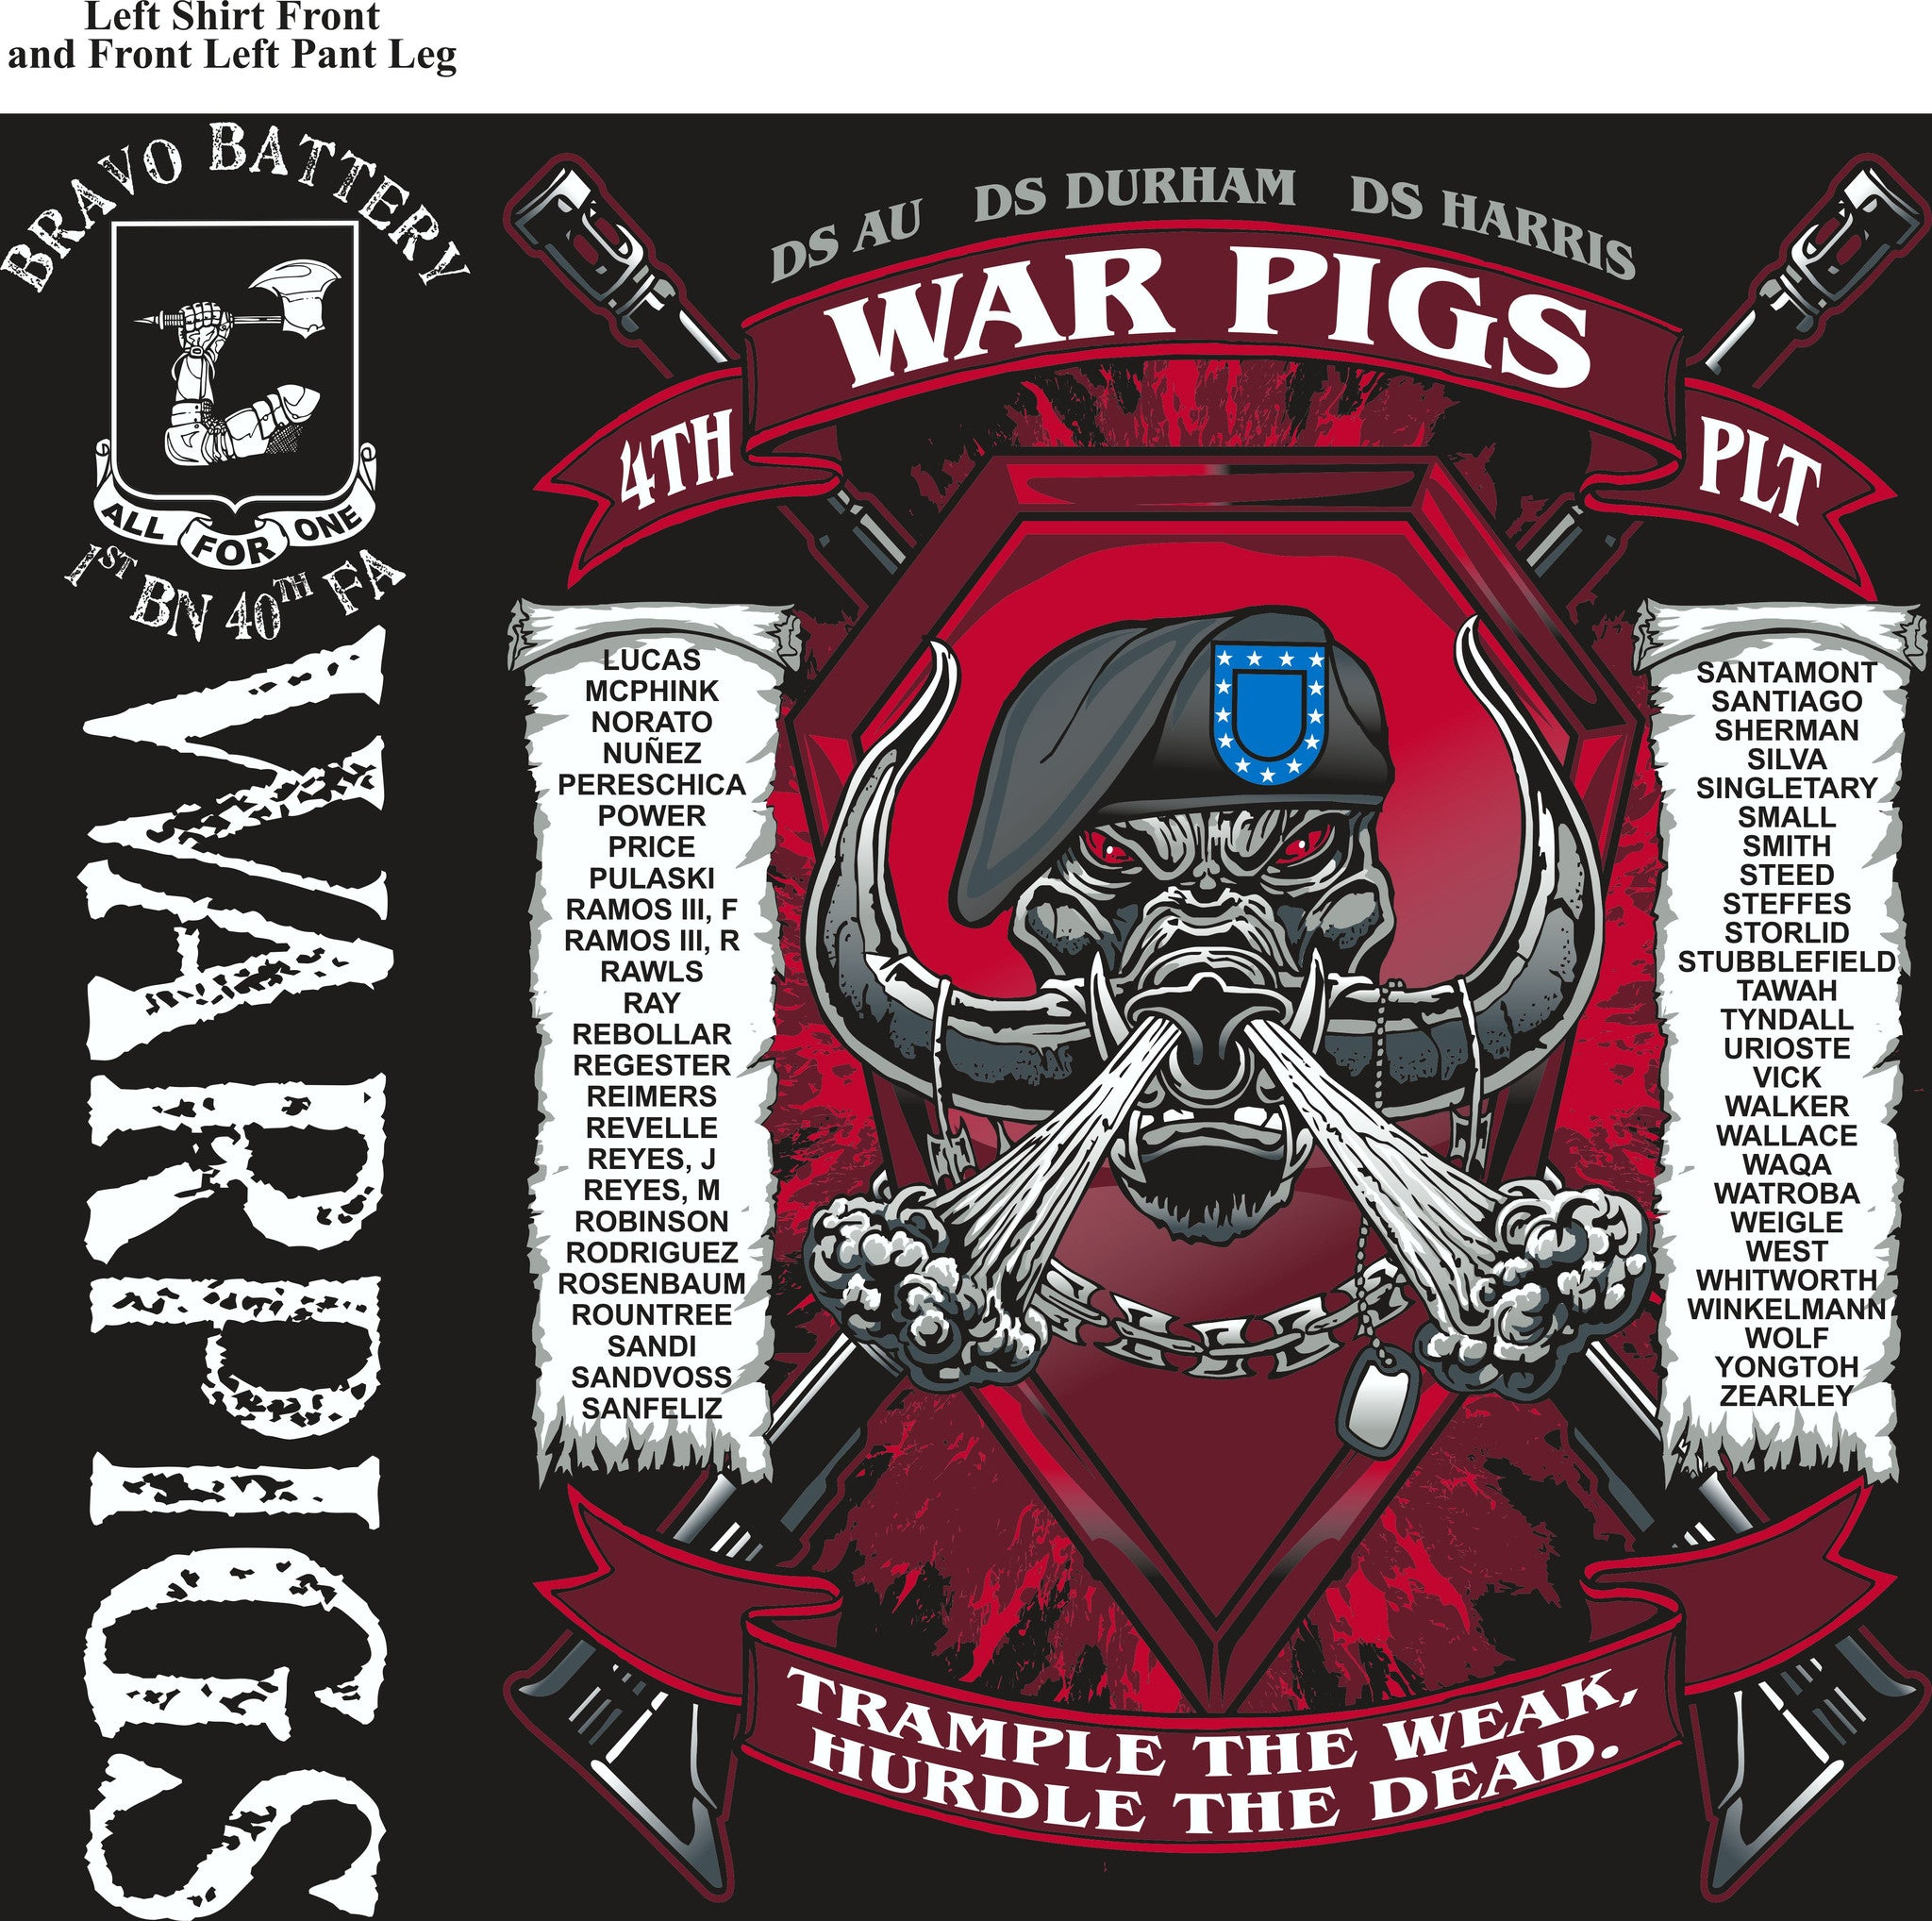 PLATOON SHIRTS (2nd generation print) BRAVO 1st 40th WARPIGS APR 2017